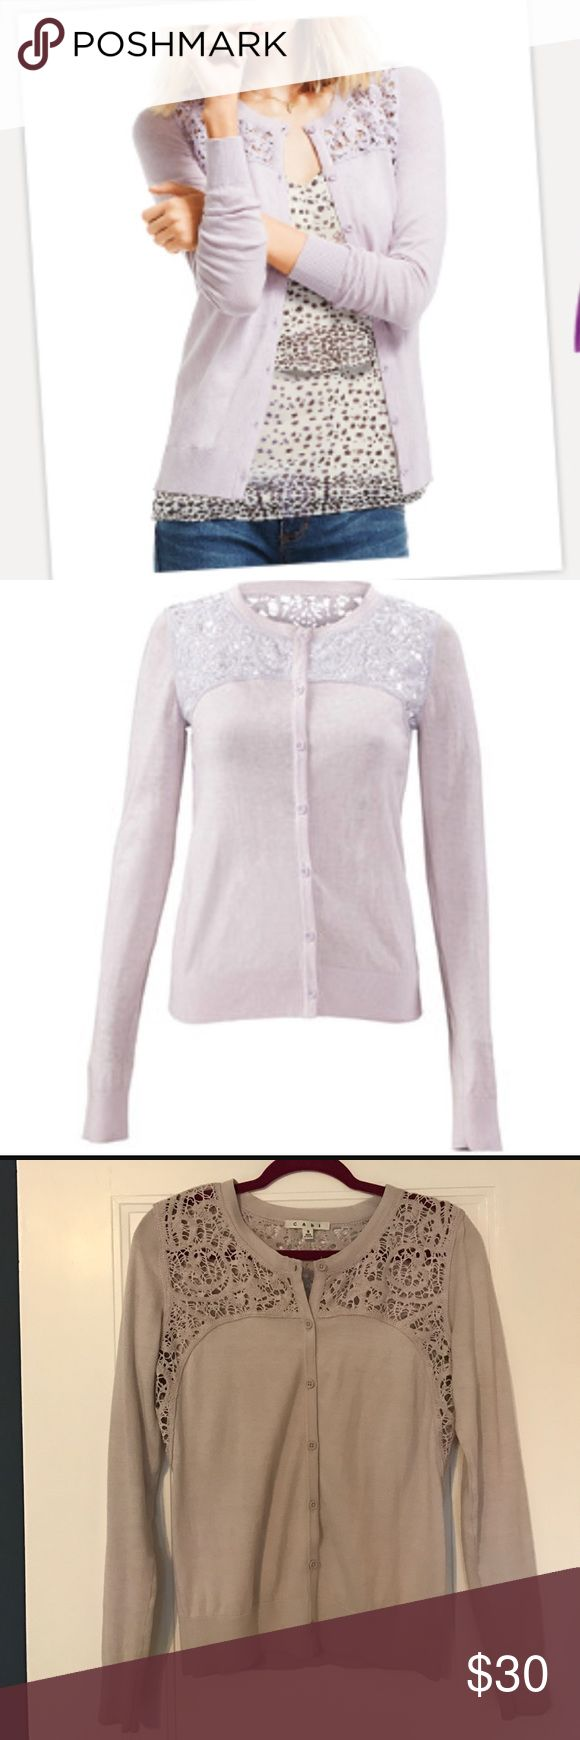 Cabi Yoke Lace Cardigan - Lilac Cardigan with lace detail in front and back - beautiful lilac color. Great pre- owned condition, only worn a few times. CAbi Sweaters Cardigans